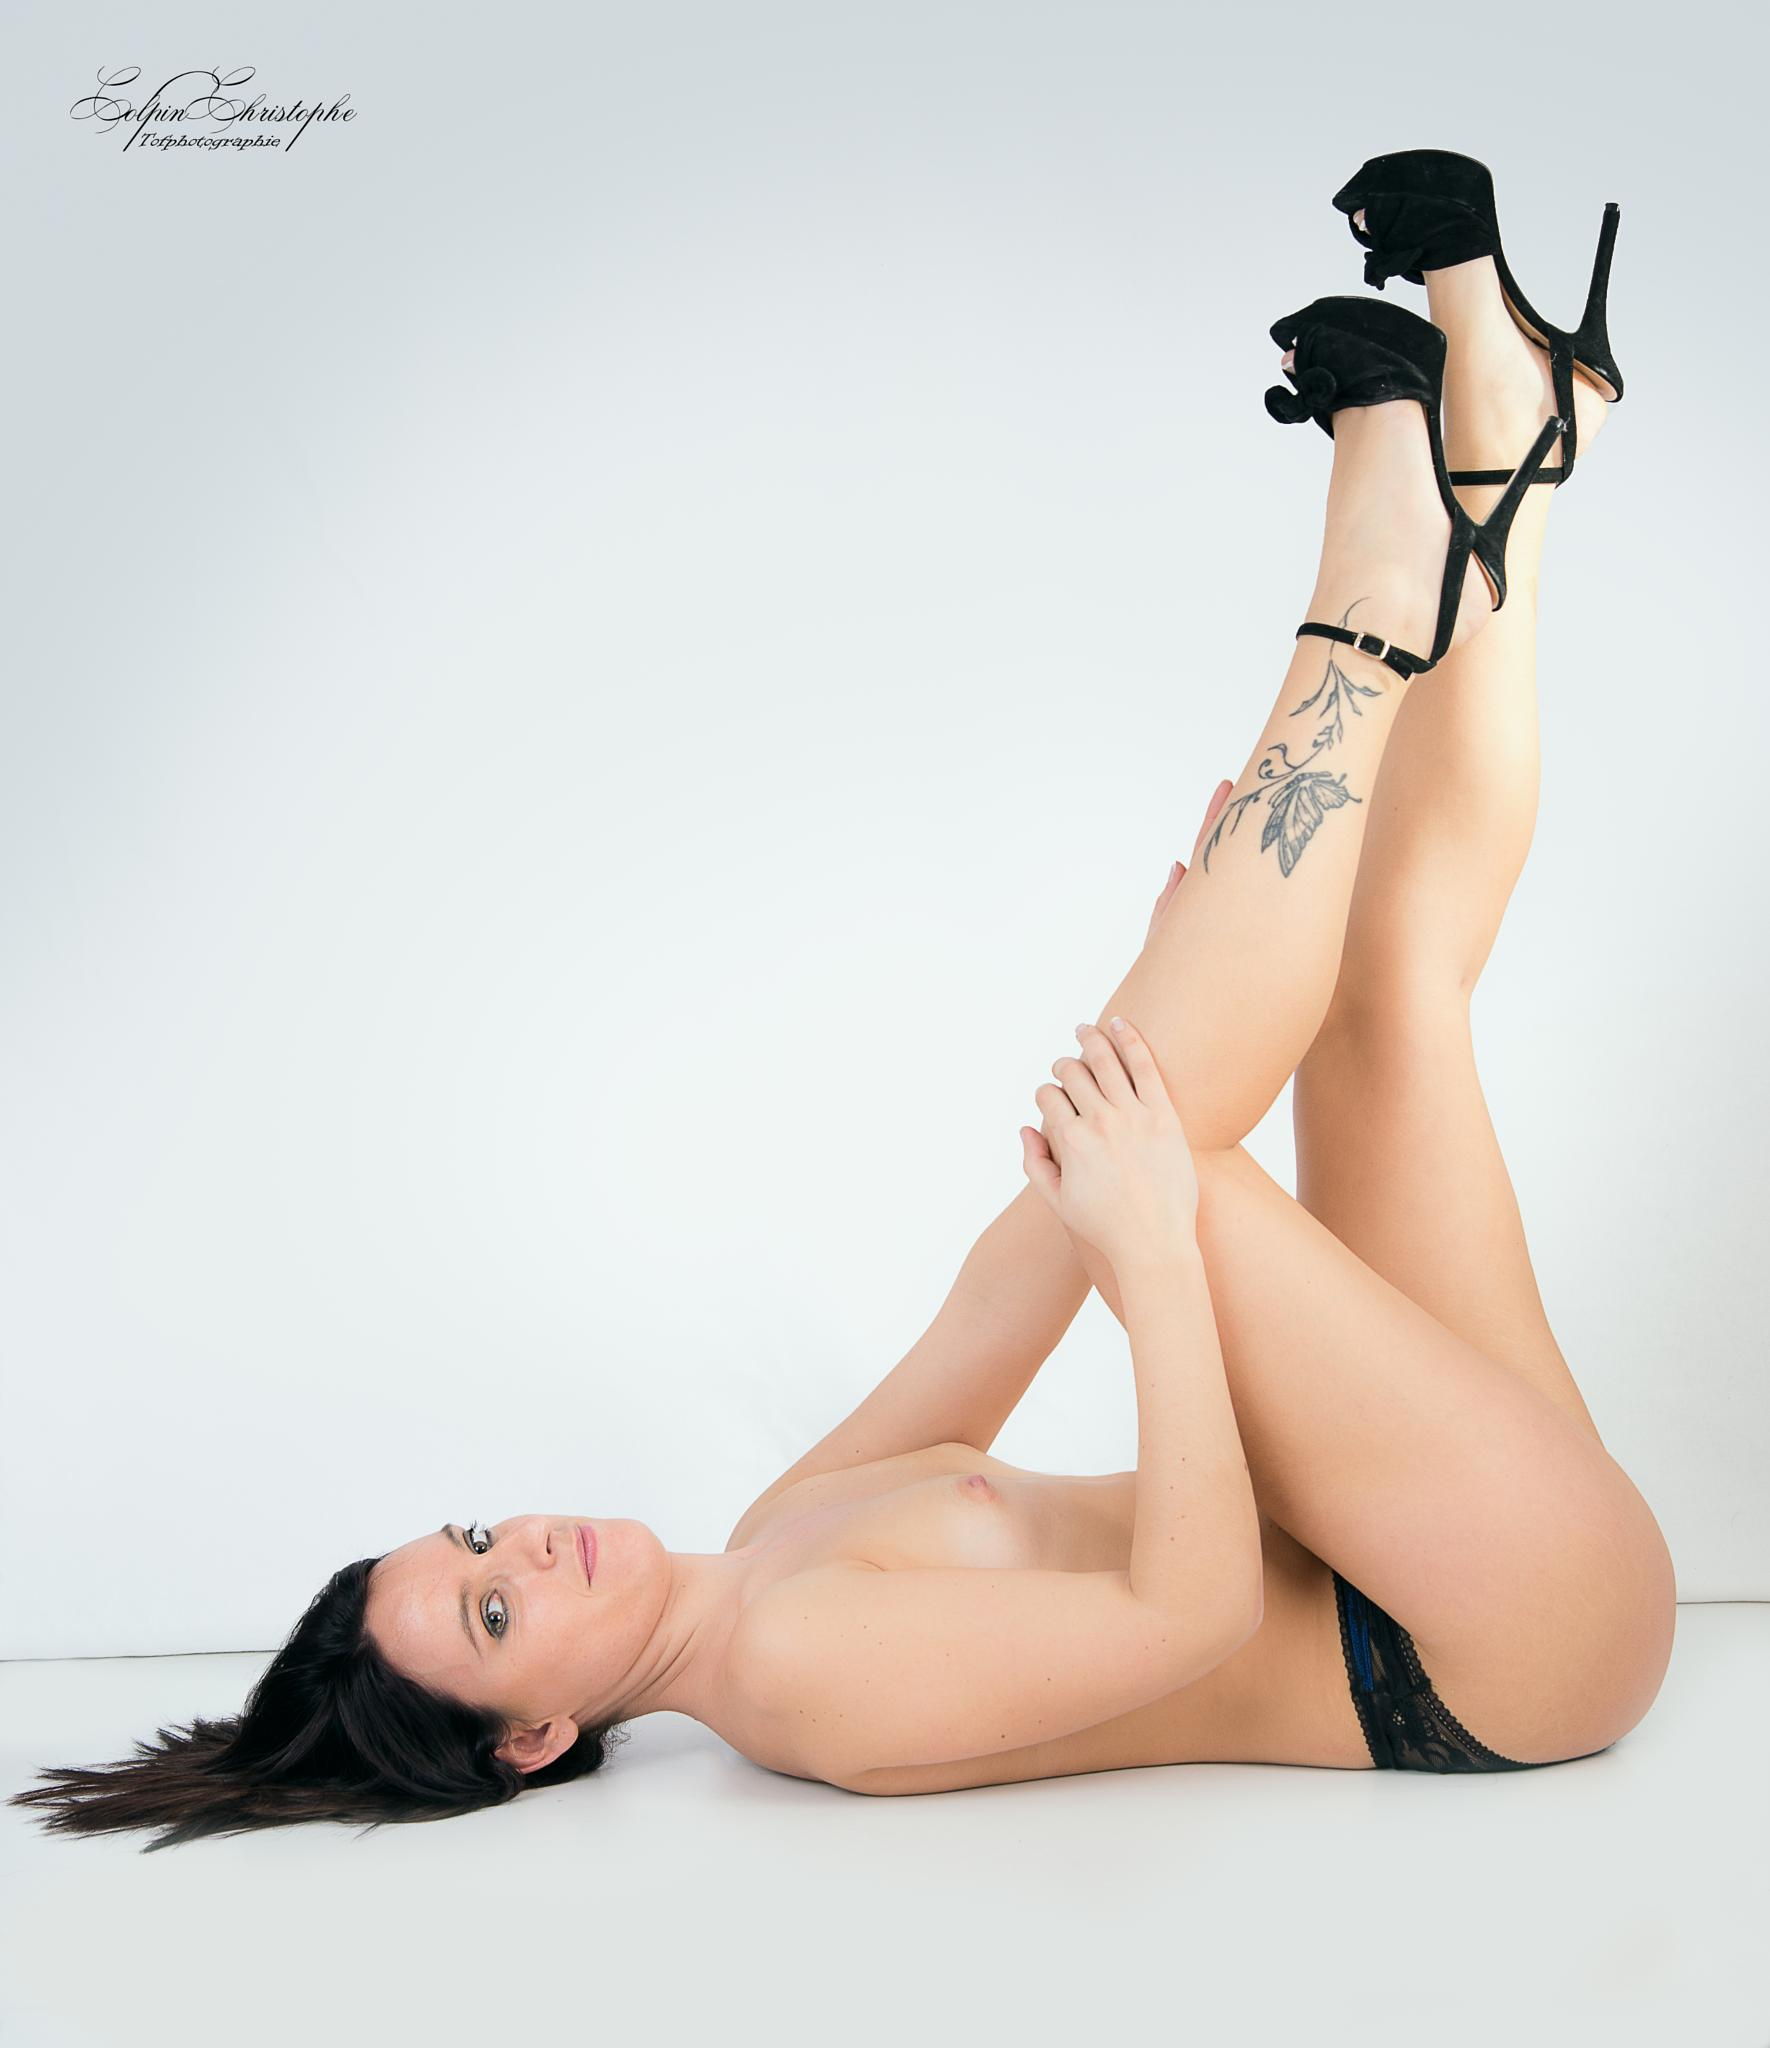 aurelie topless by tofphotographie